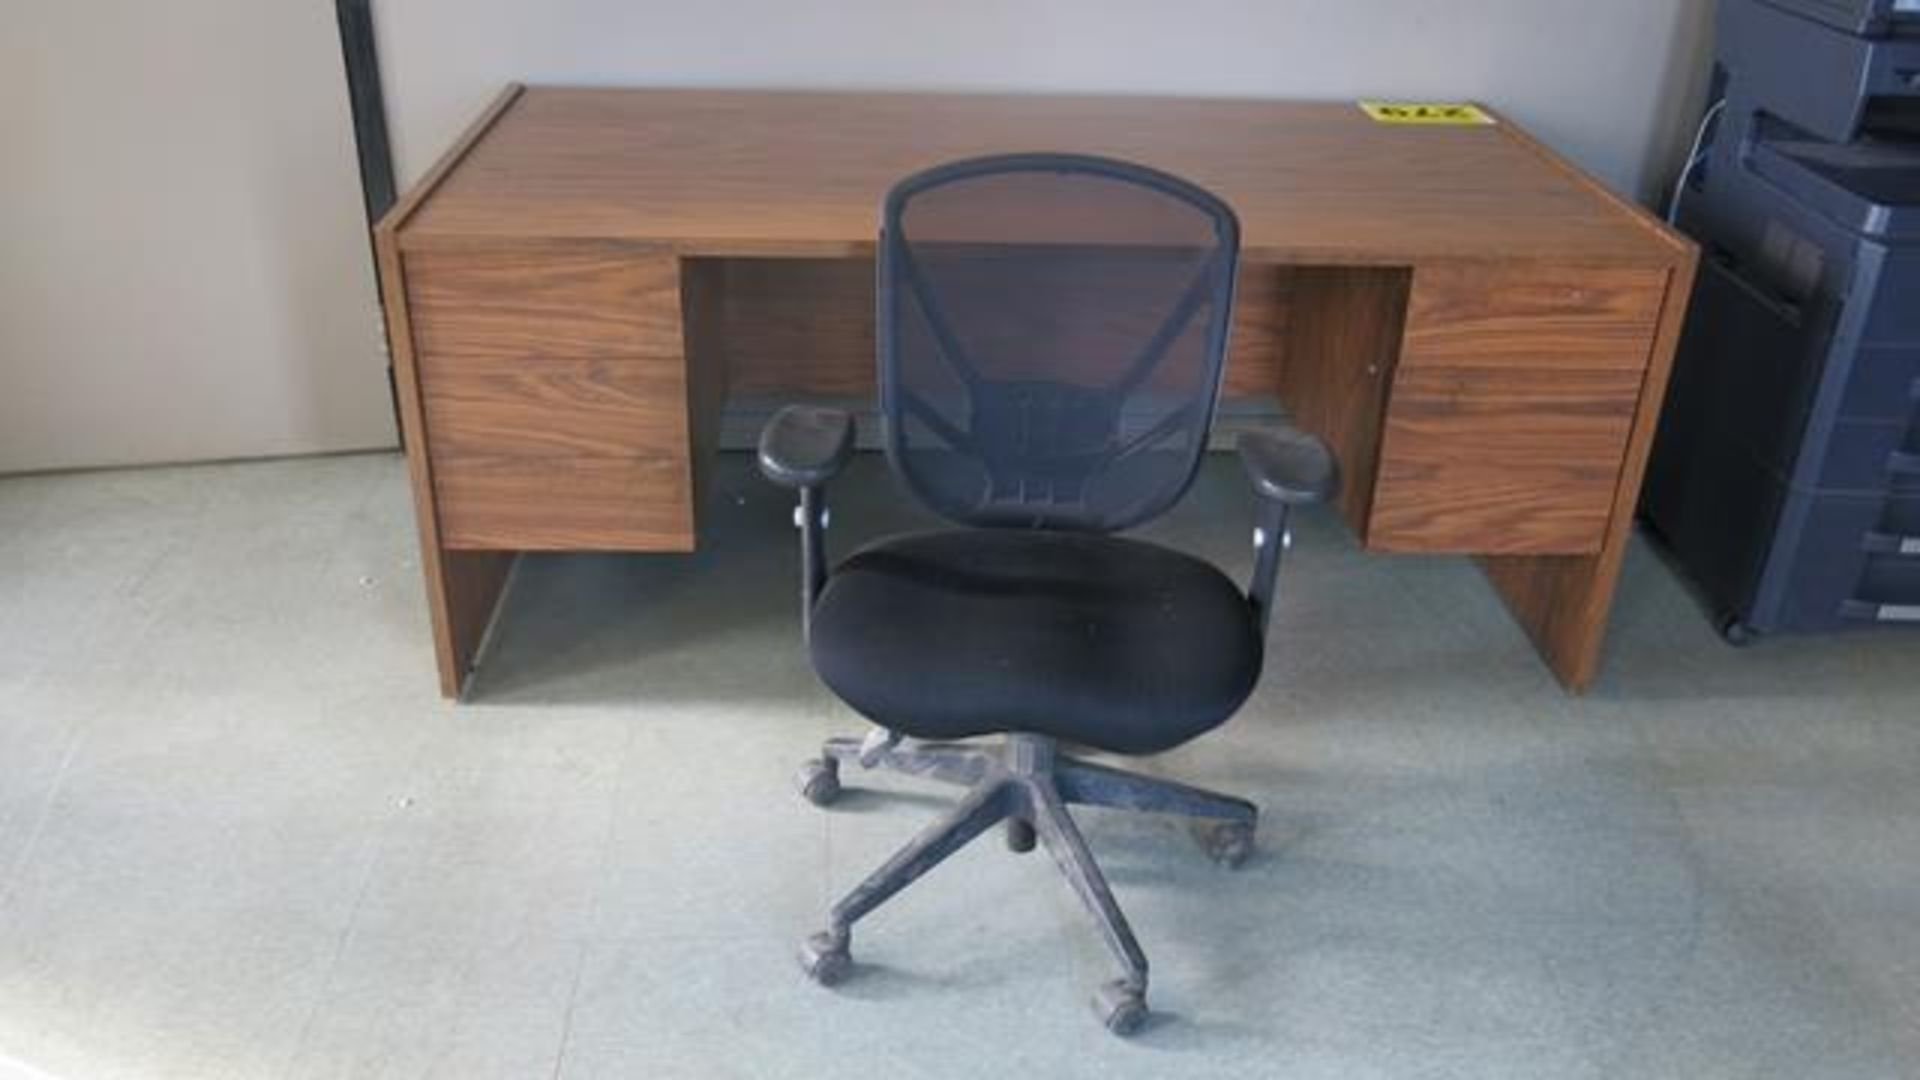 WOOD OFFICE DECK WITH FABRIC OFFICE CHAIR - Image 2 of 2